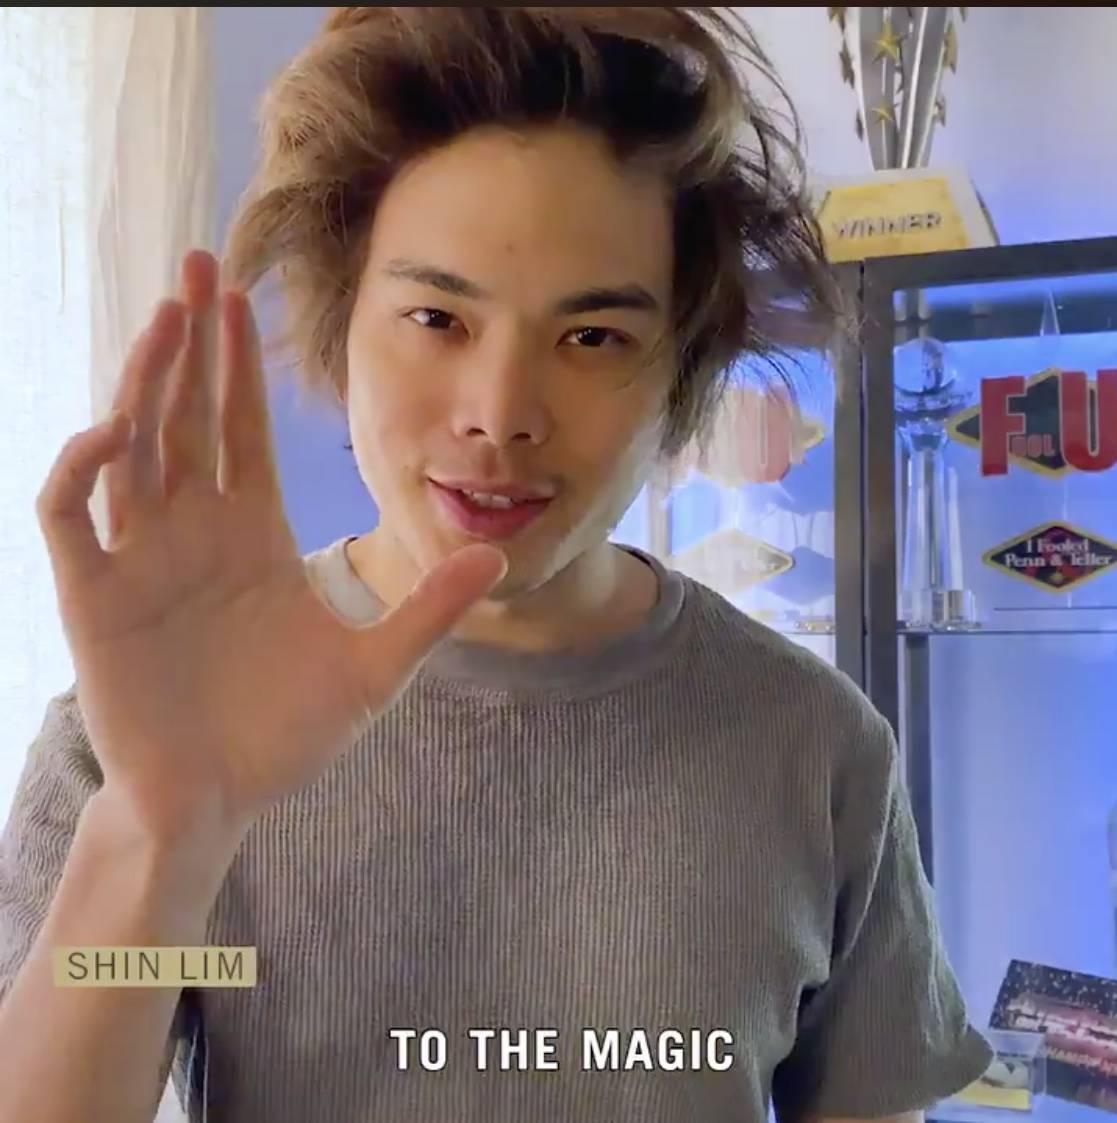 Shin Lim is shown in a new social media campaign launched by MGM Resorts International on Tuesd ...